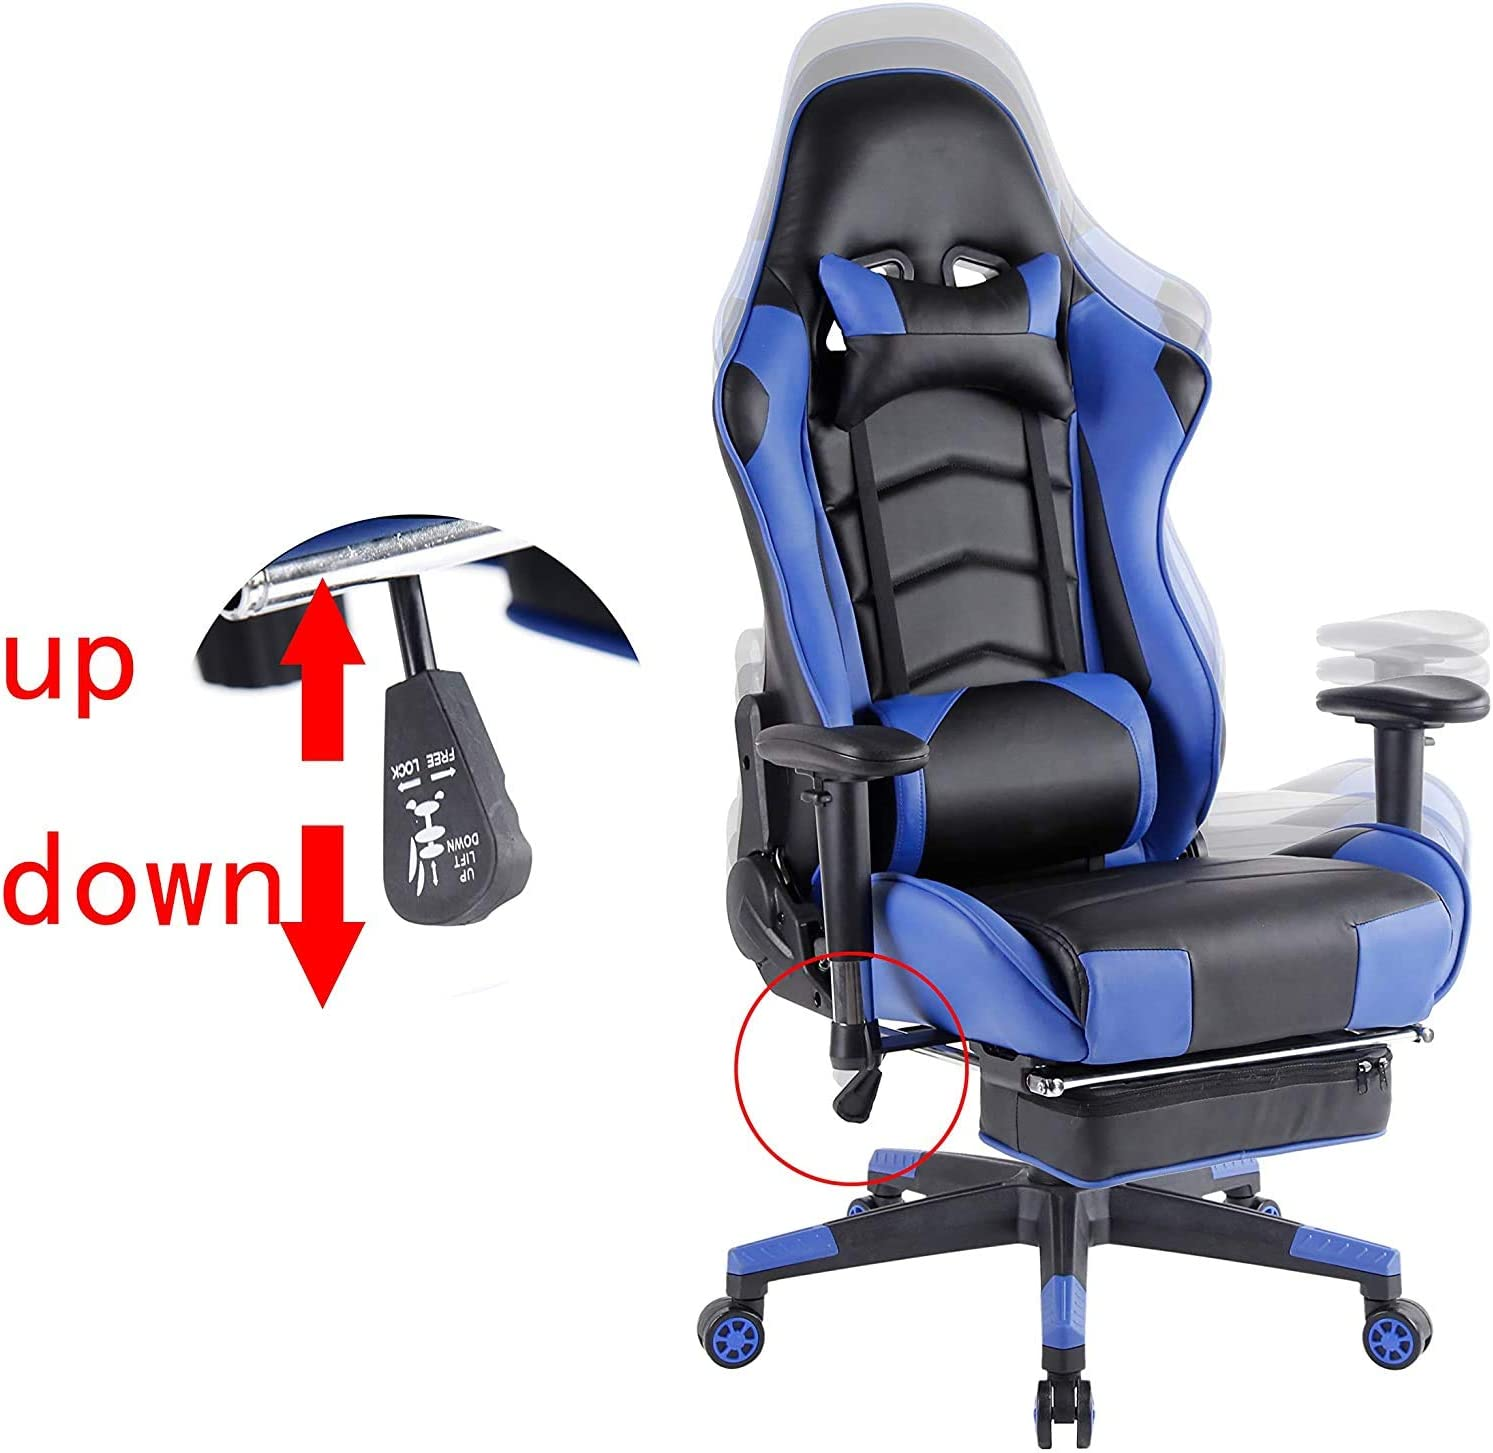 Kcream Gaming Chair Office Chair High Back Computer Chair PU Leather Desk Chair PC Racing Executive Ergonomic Adjustable Swivel Task Chair with Headrest Lumbar and Support Retractible Footrest Blue